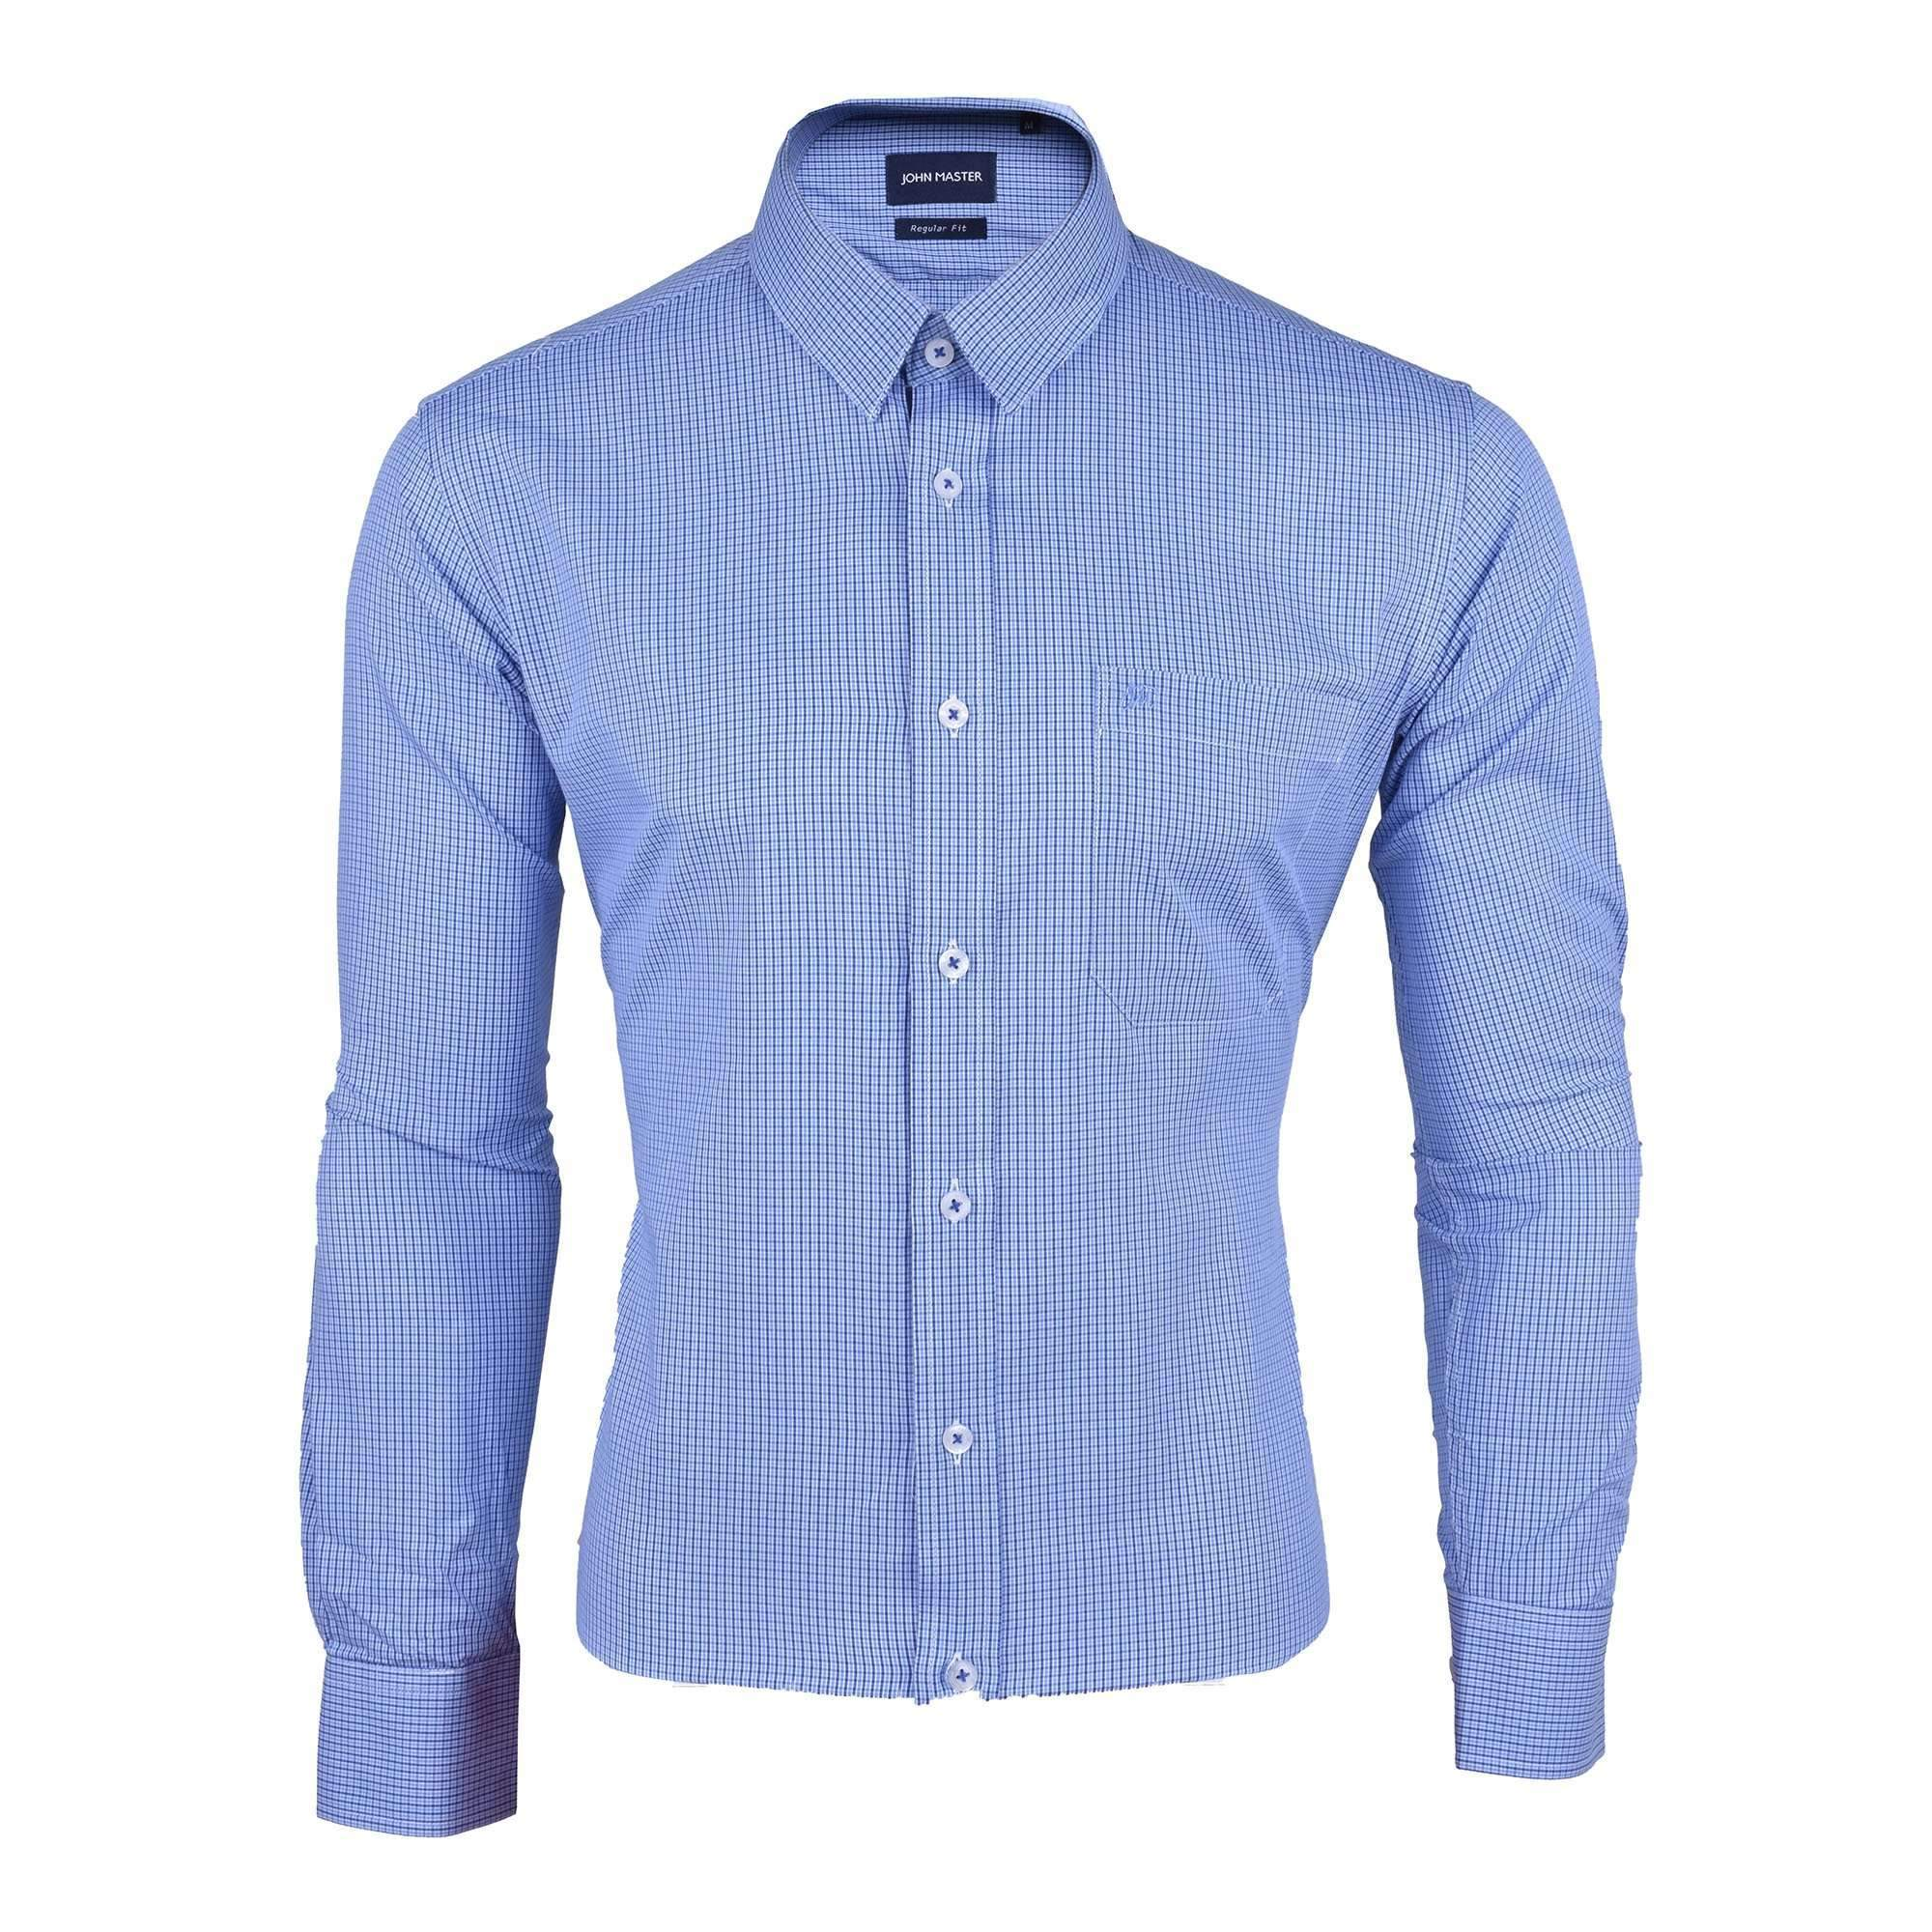 John Master Business Shirt Long Sleeve Blue 7087008 : Buy John Master online at CMG.MY